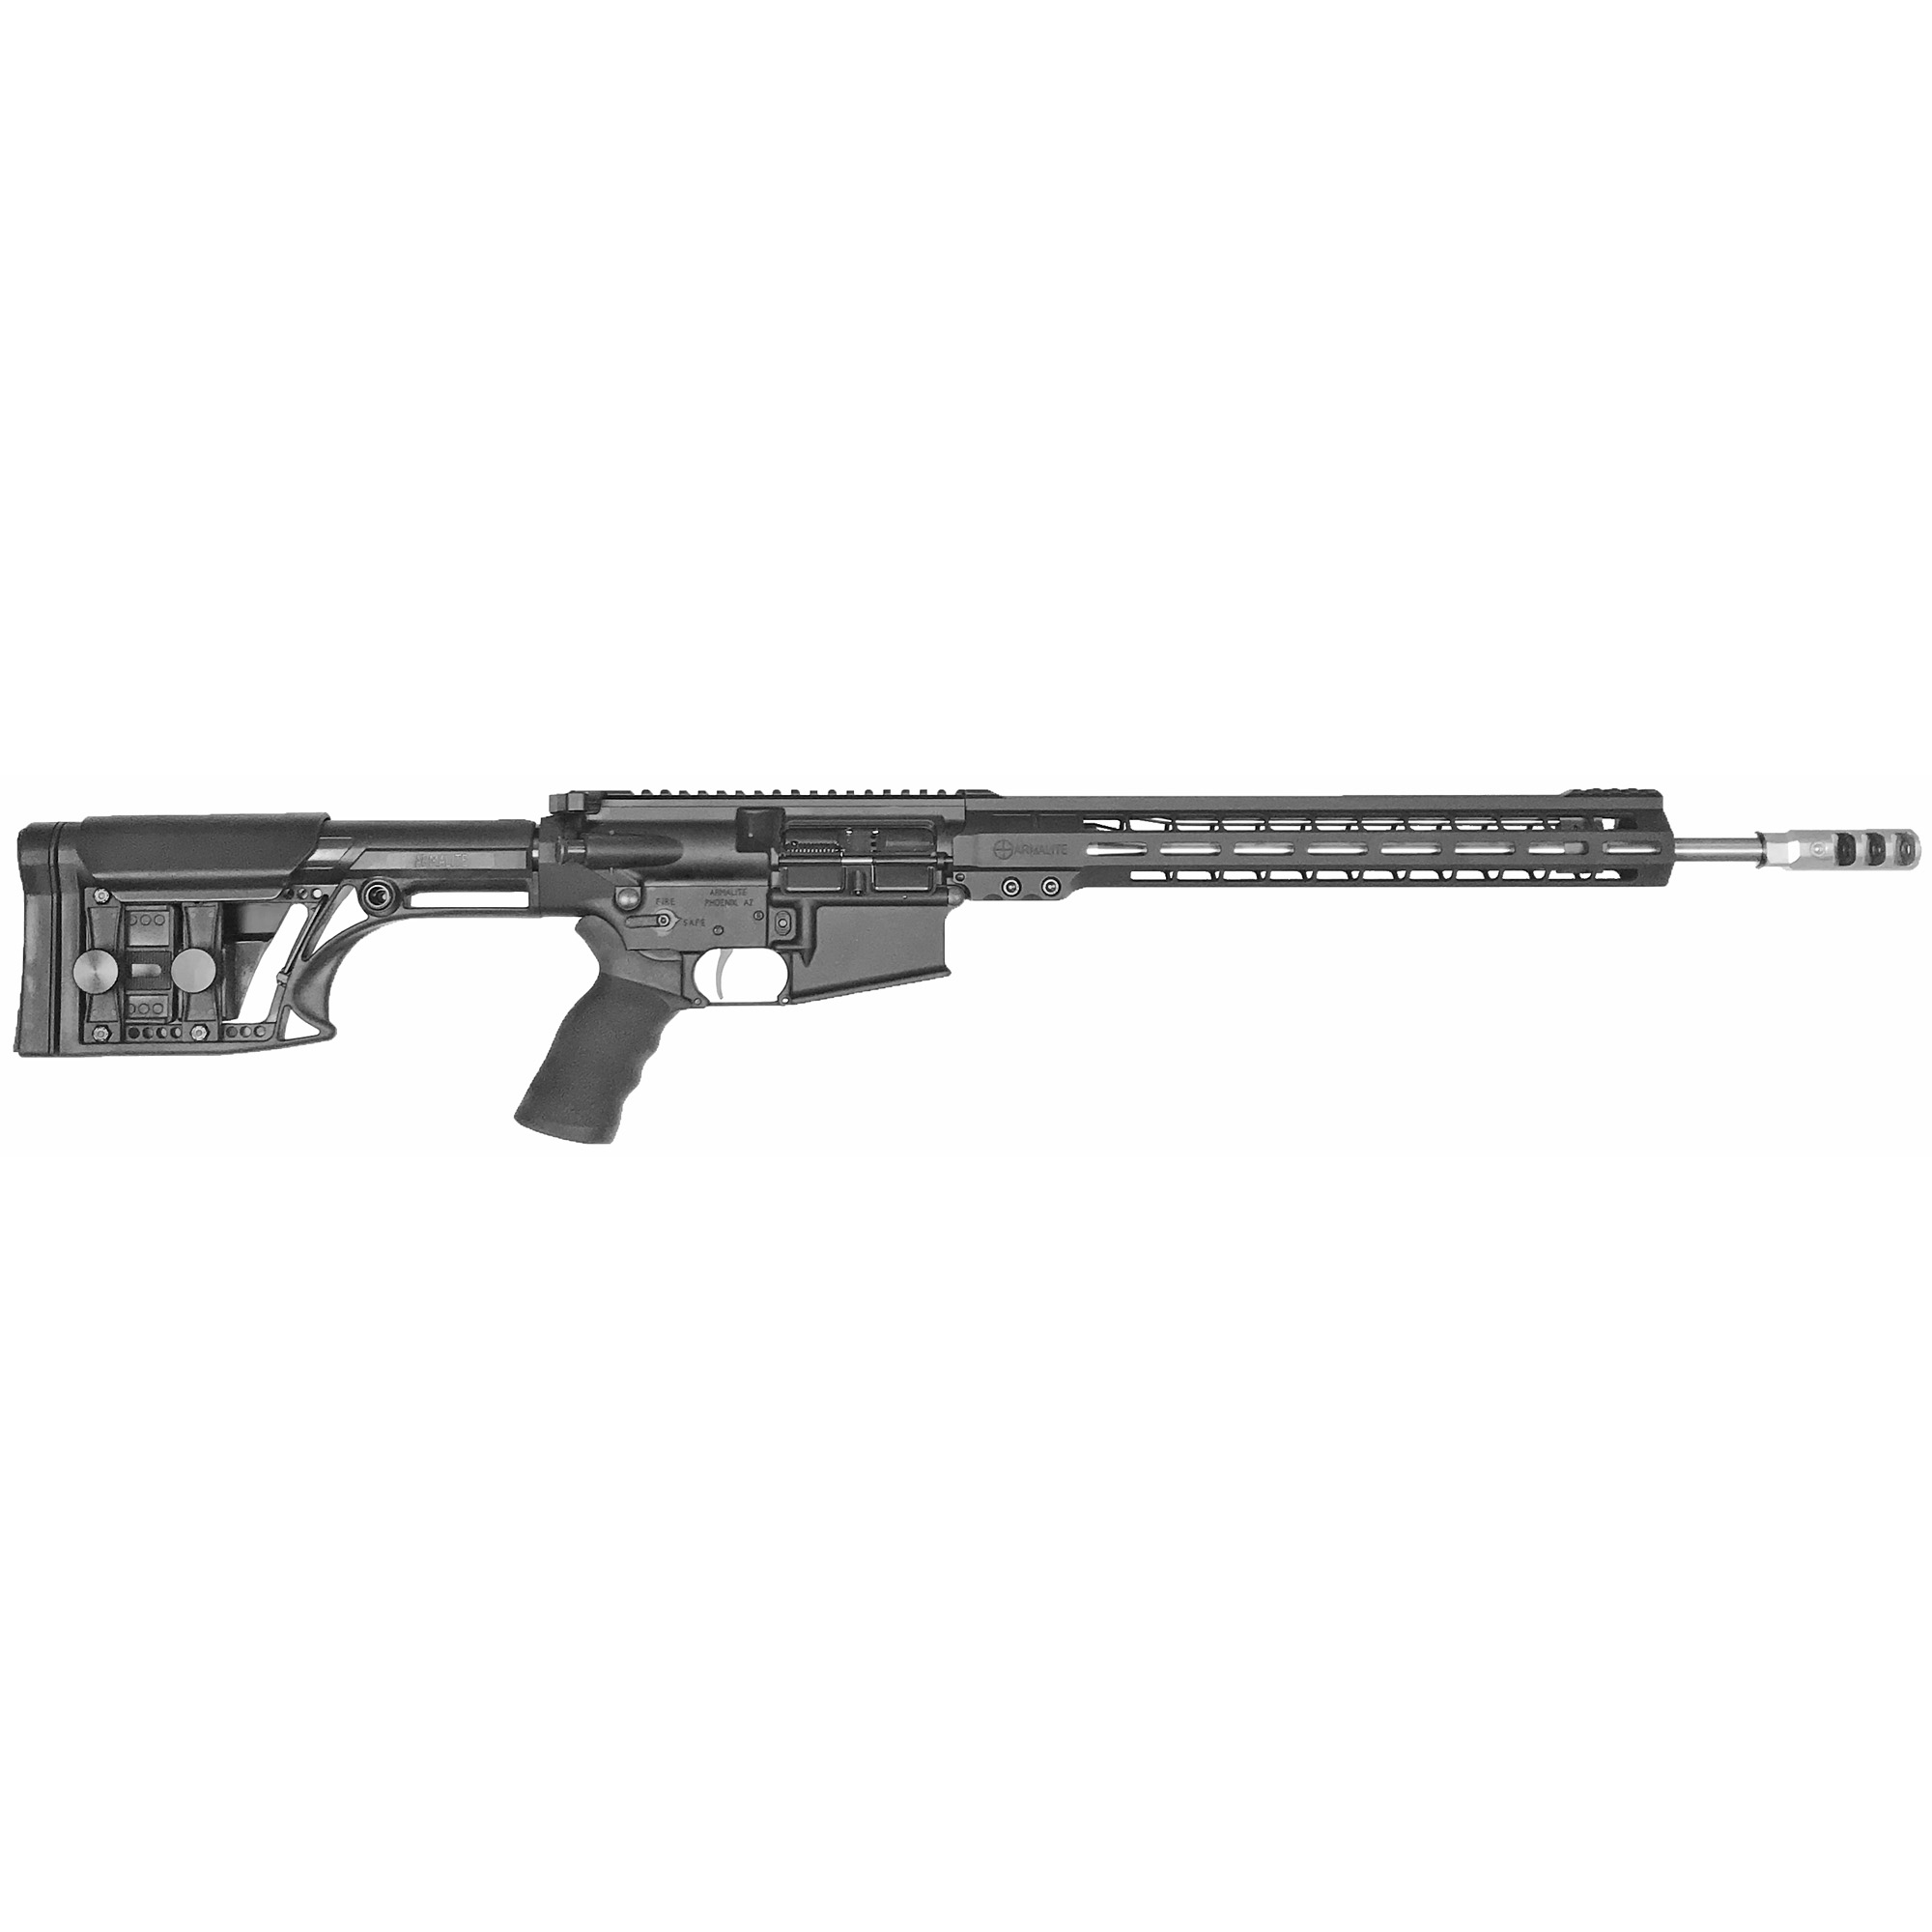 """Purpose built for 3-Gun and practical rifle competition"""" the AR103GN18's are ready to dominate"""" right out-of-the-box. A Timney 4-lb."""" single-stage trigger and Ergo wide grip come standard. The light weight MBA-1 buttstock features an adjustable cheek piece and length-of-pull. The factory ambidextrous safety and Raptor charging handle provide ease of operation for all types of shooters."""